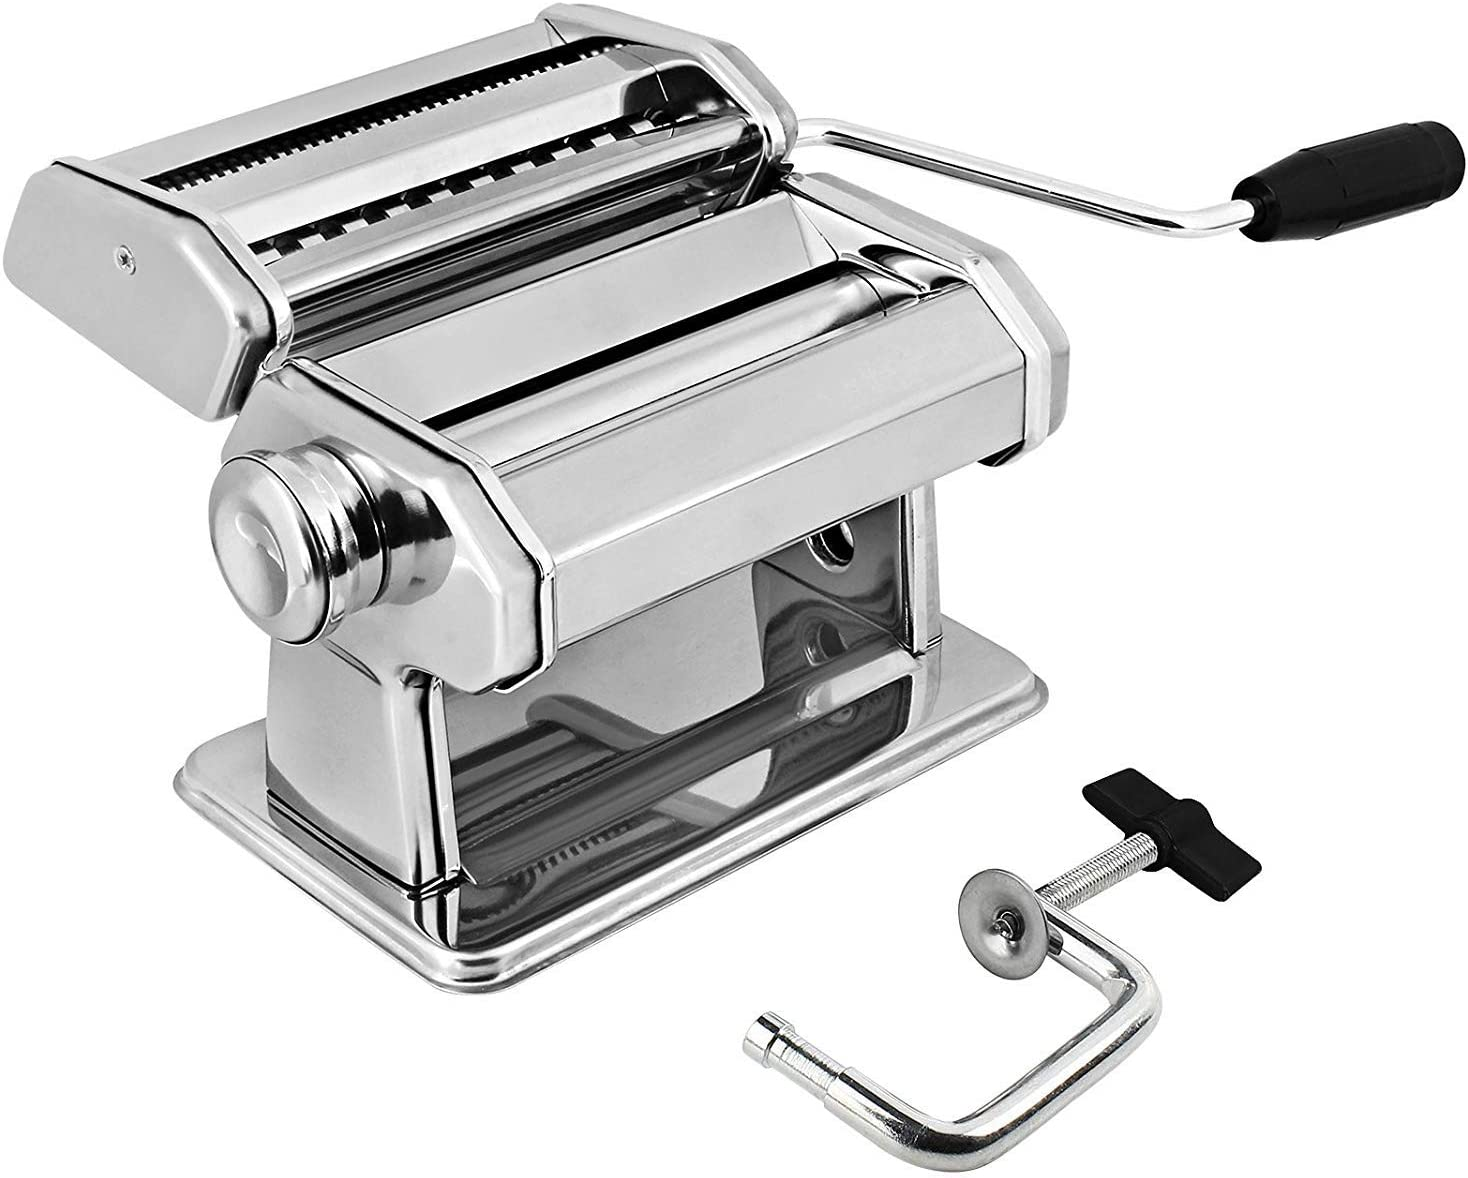 Amazon Com Gourmex Stainless Steel Manual Pasta Maker Machine With Adjustable Thickness Settings Perfect For Professional Homemade Spaghetti And Fettuccini Includes Removable Handle And Clamp Silver Kitchen Dining